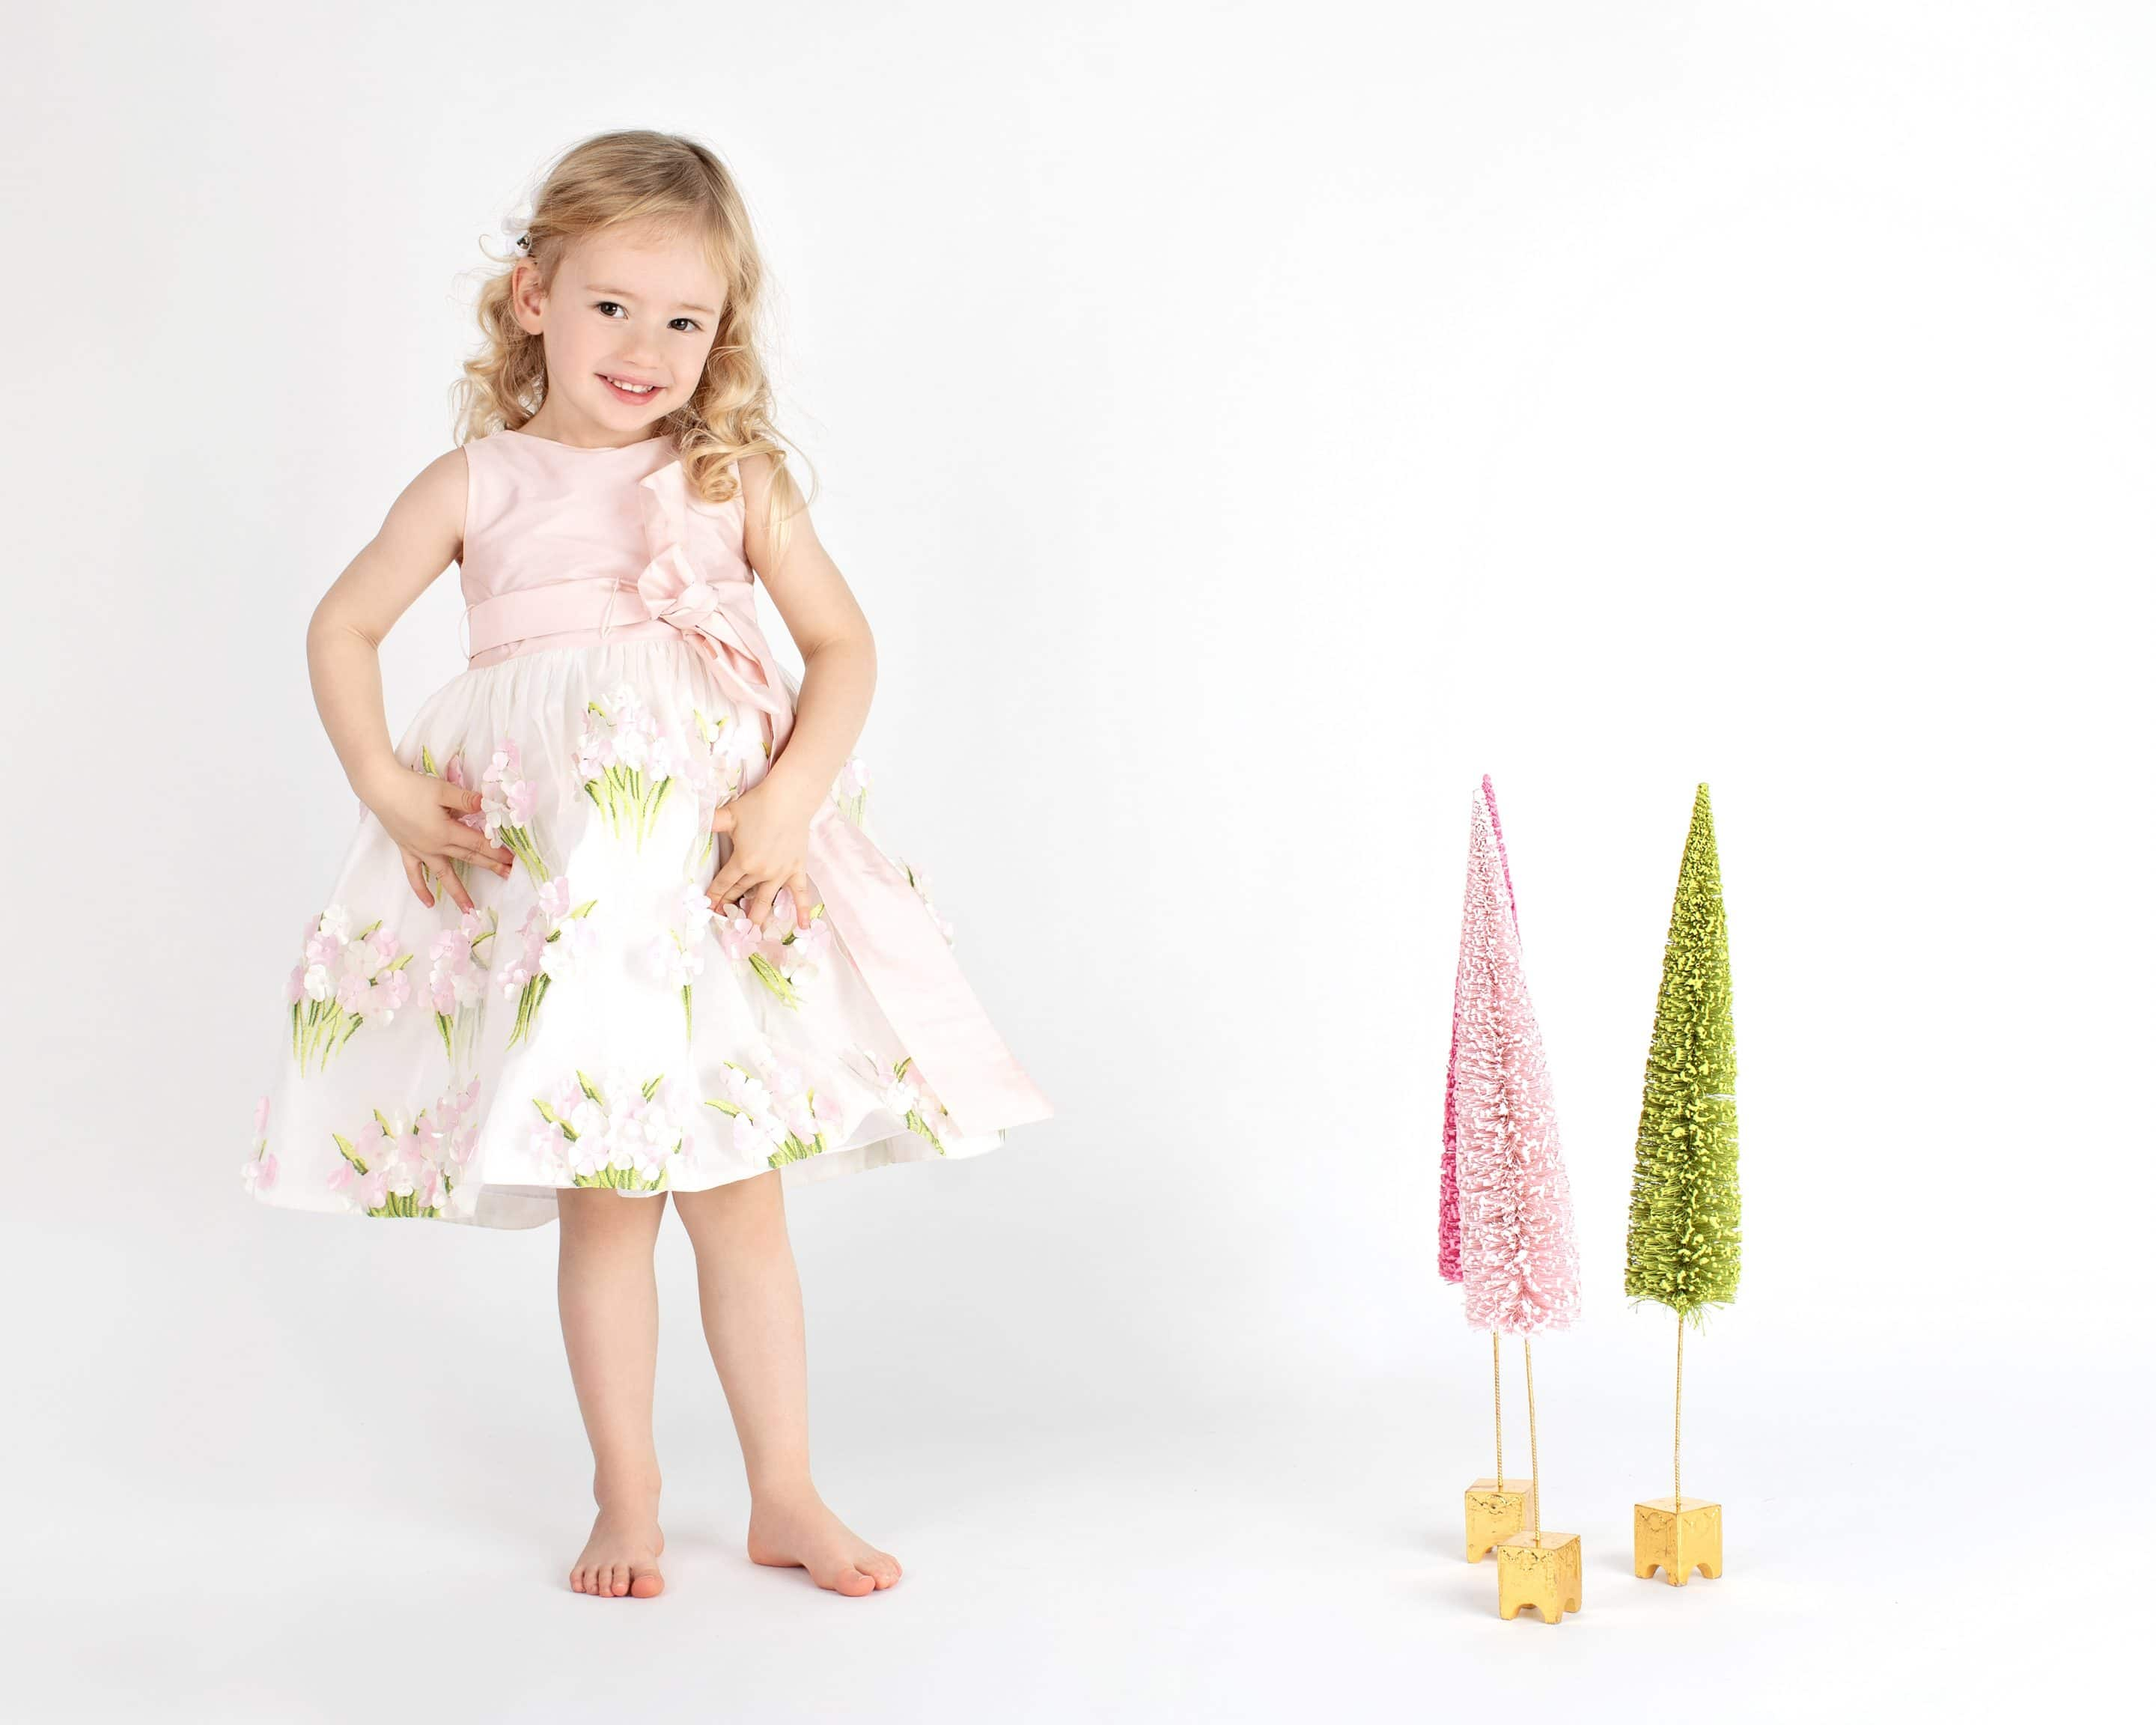 beautiful little girl posing with festive holiday trees